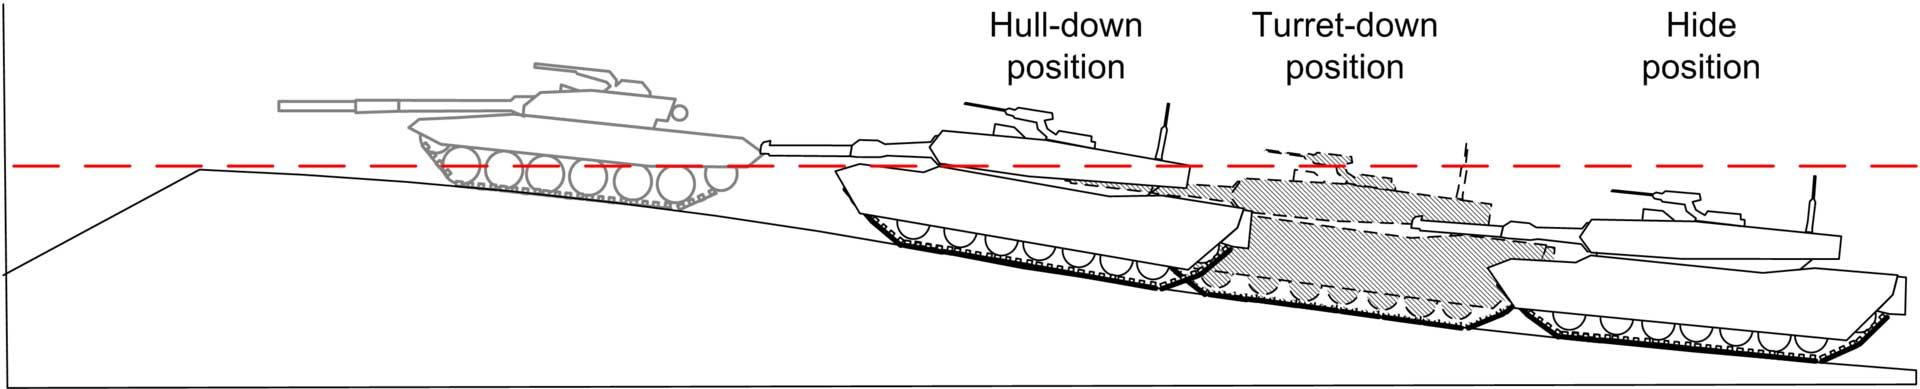 Hull_down_tank_diagram.jpg